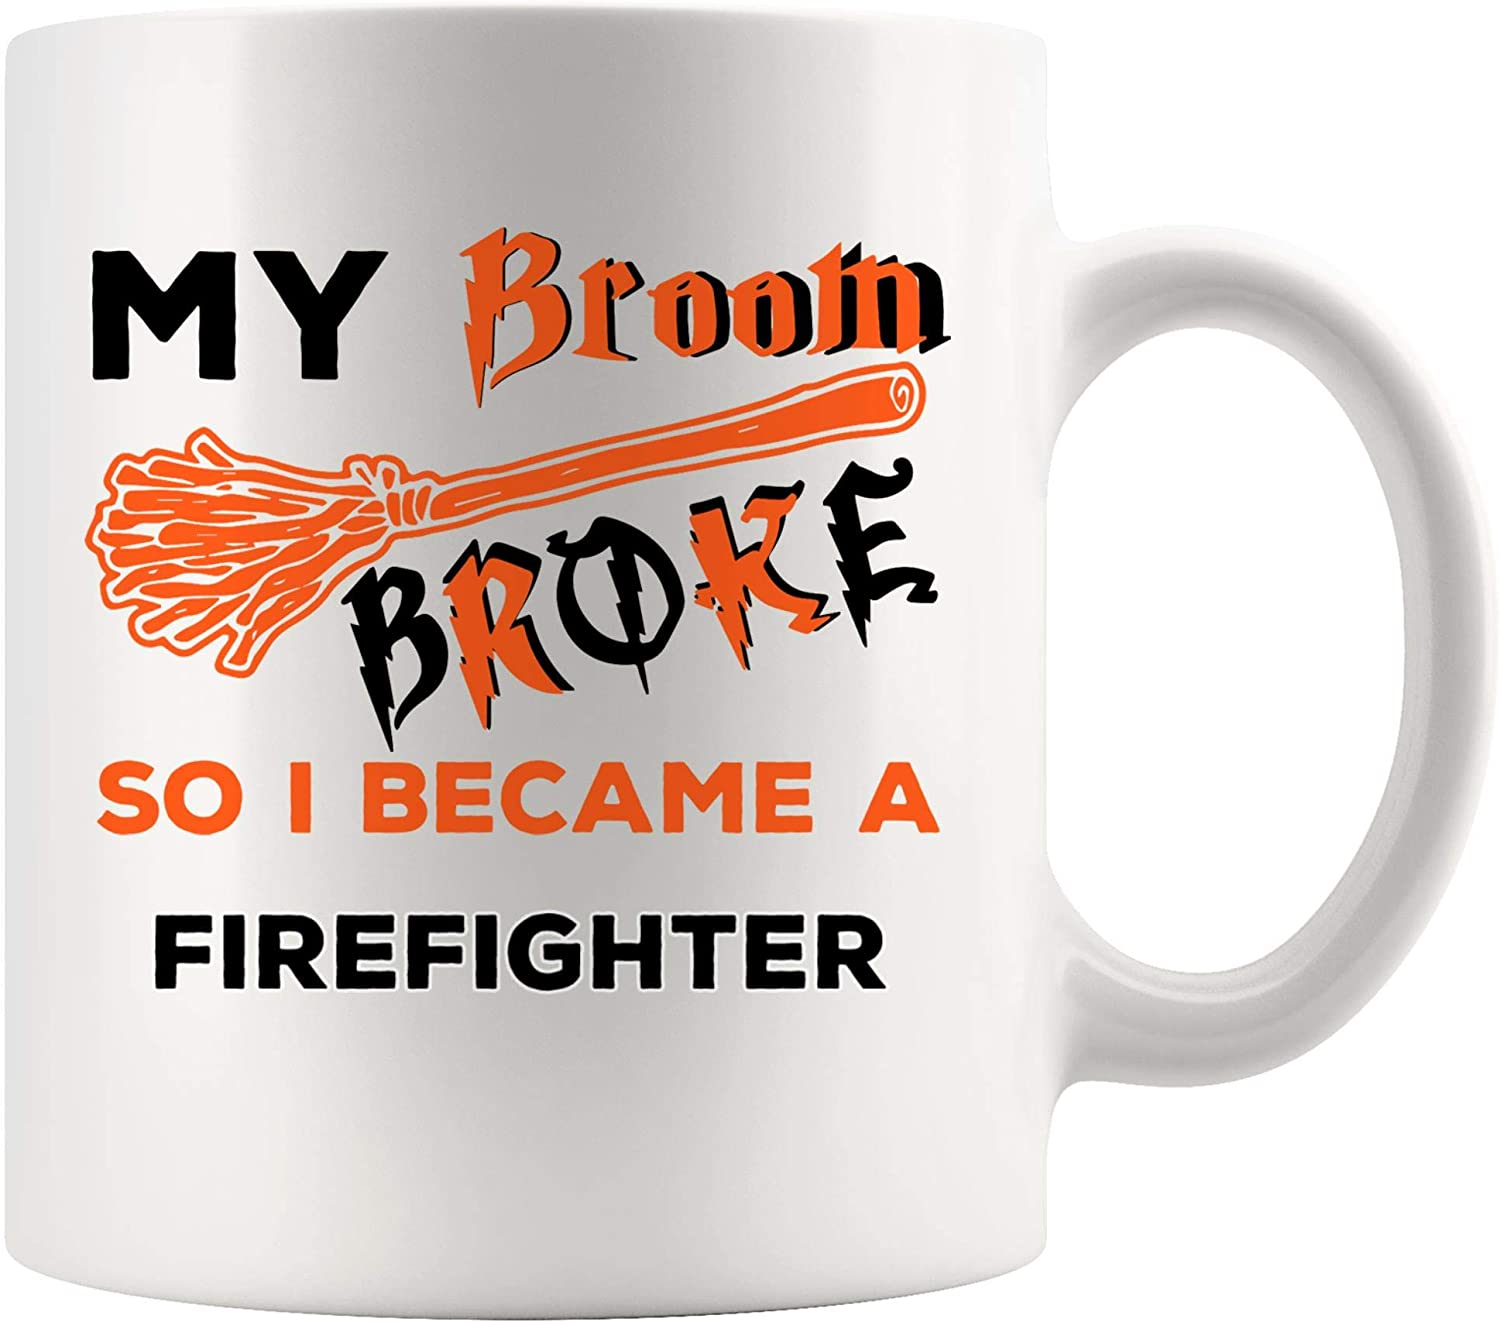 LIMITED EDITION. FIREMAN FIREFIGHTER PERSONALISED MUG